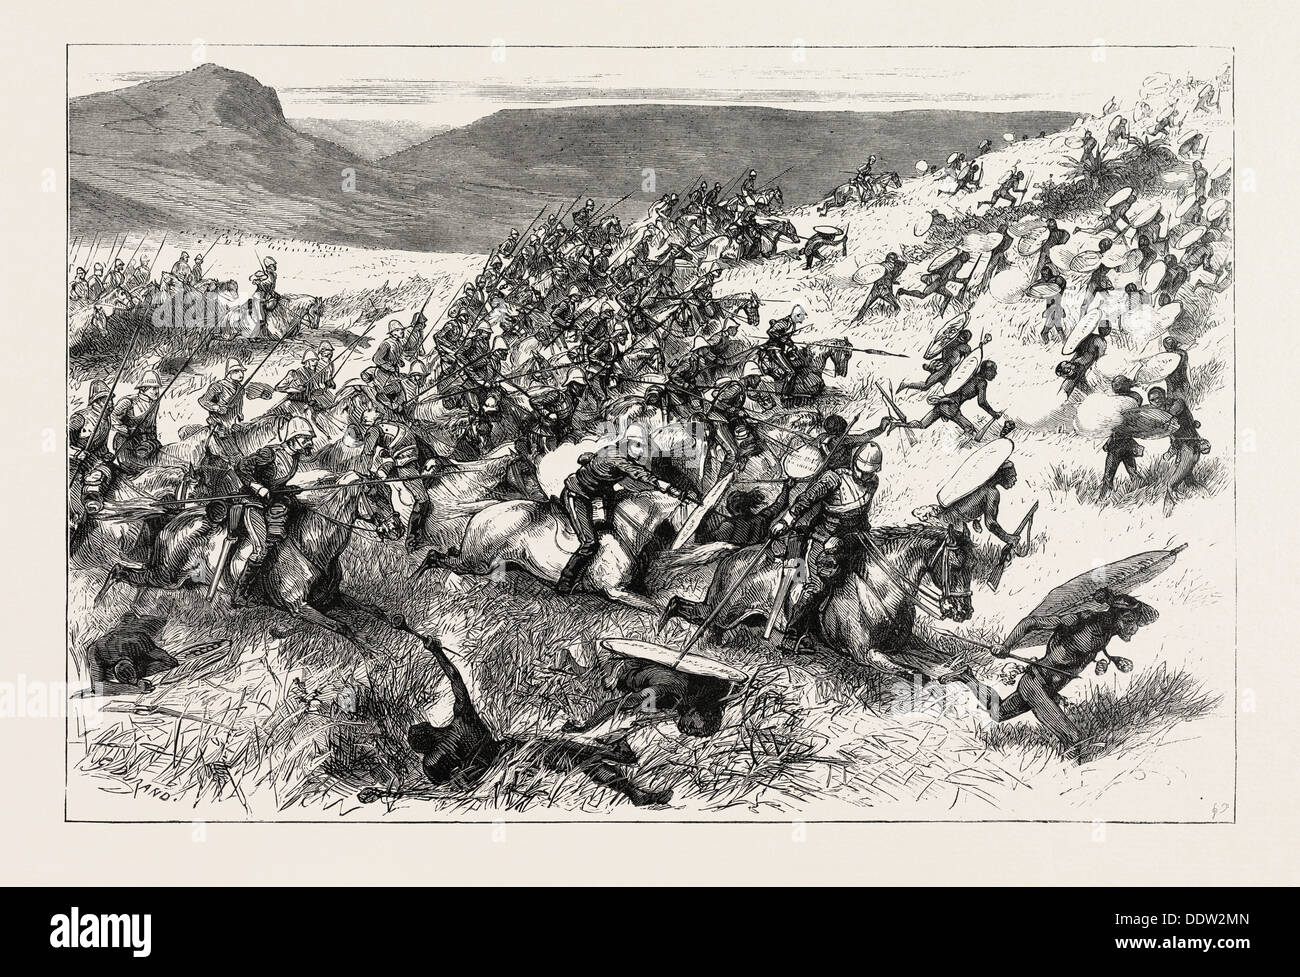 THE ZULU WAR - CHARGE OF THE SEVENTEENTH LANCERS AT THE BATTLE OF ULUNDI, ENGRAVING 1879 - Stock Image